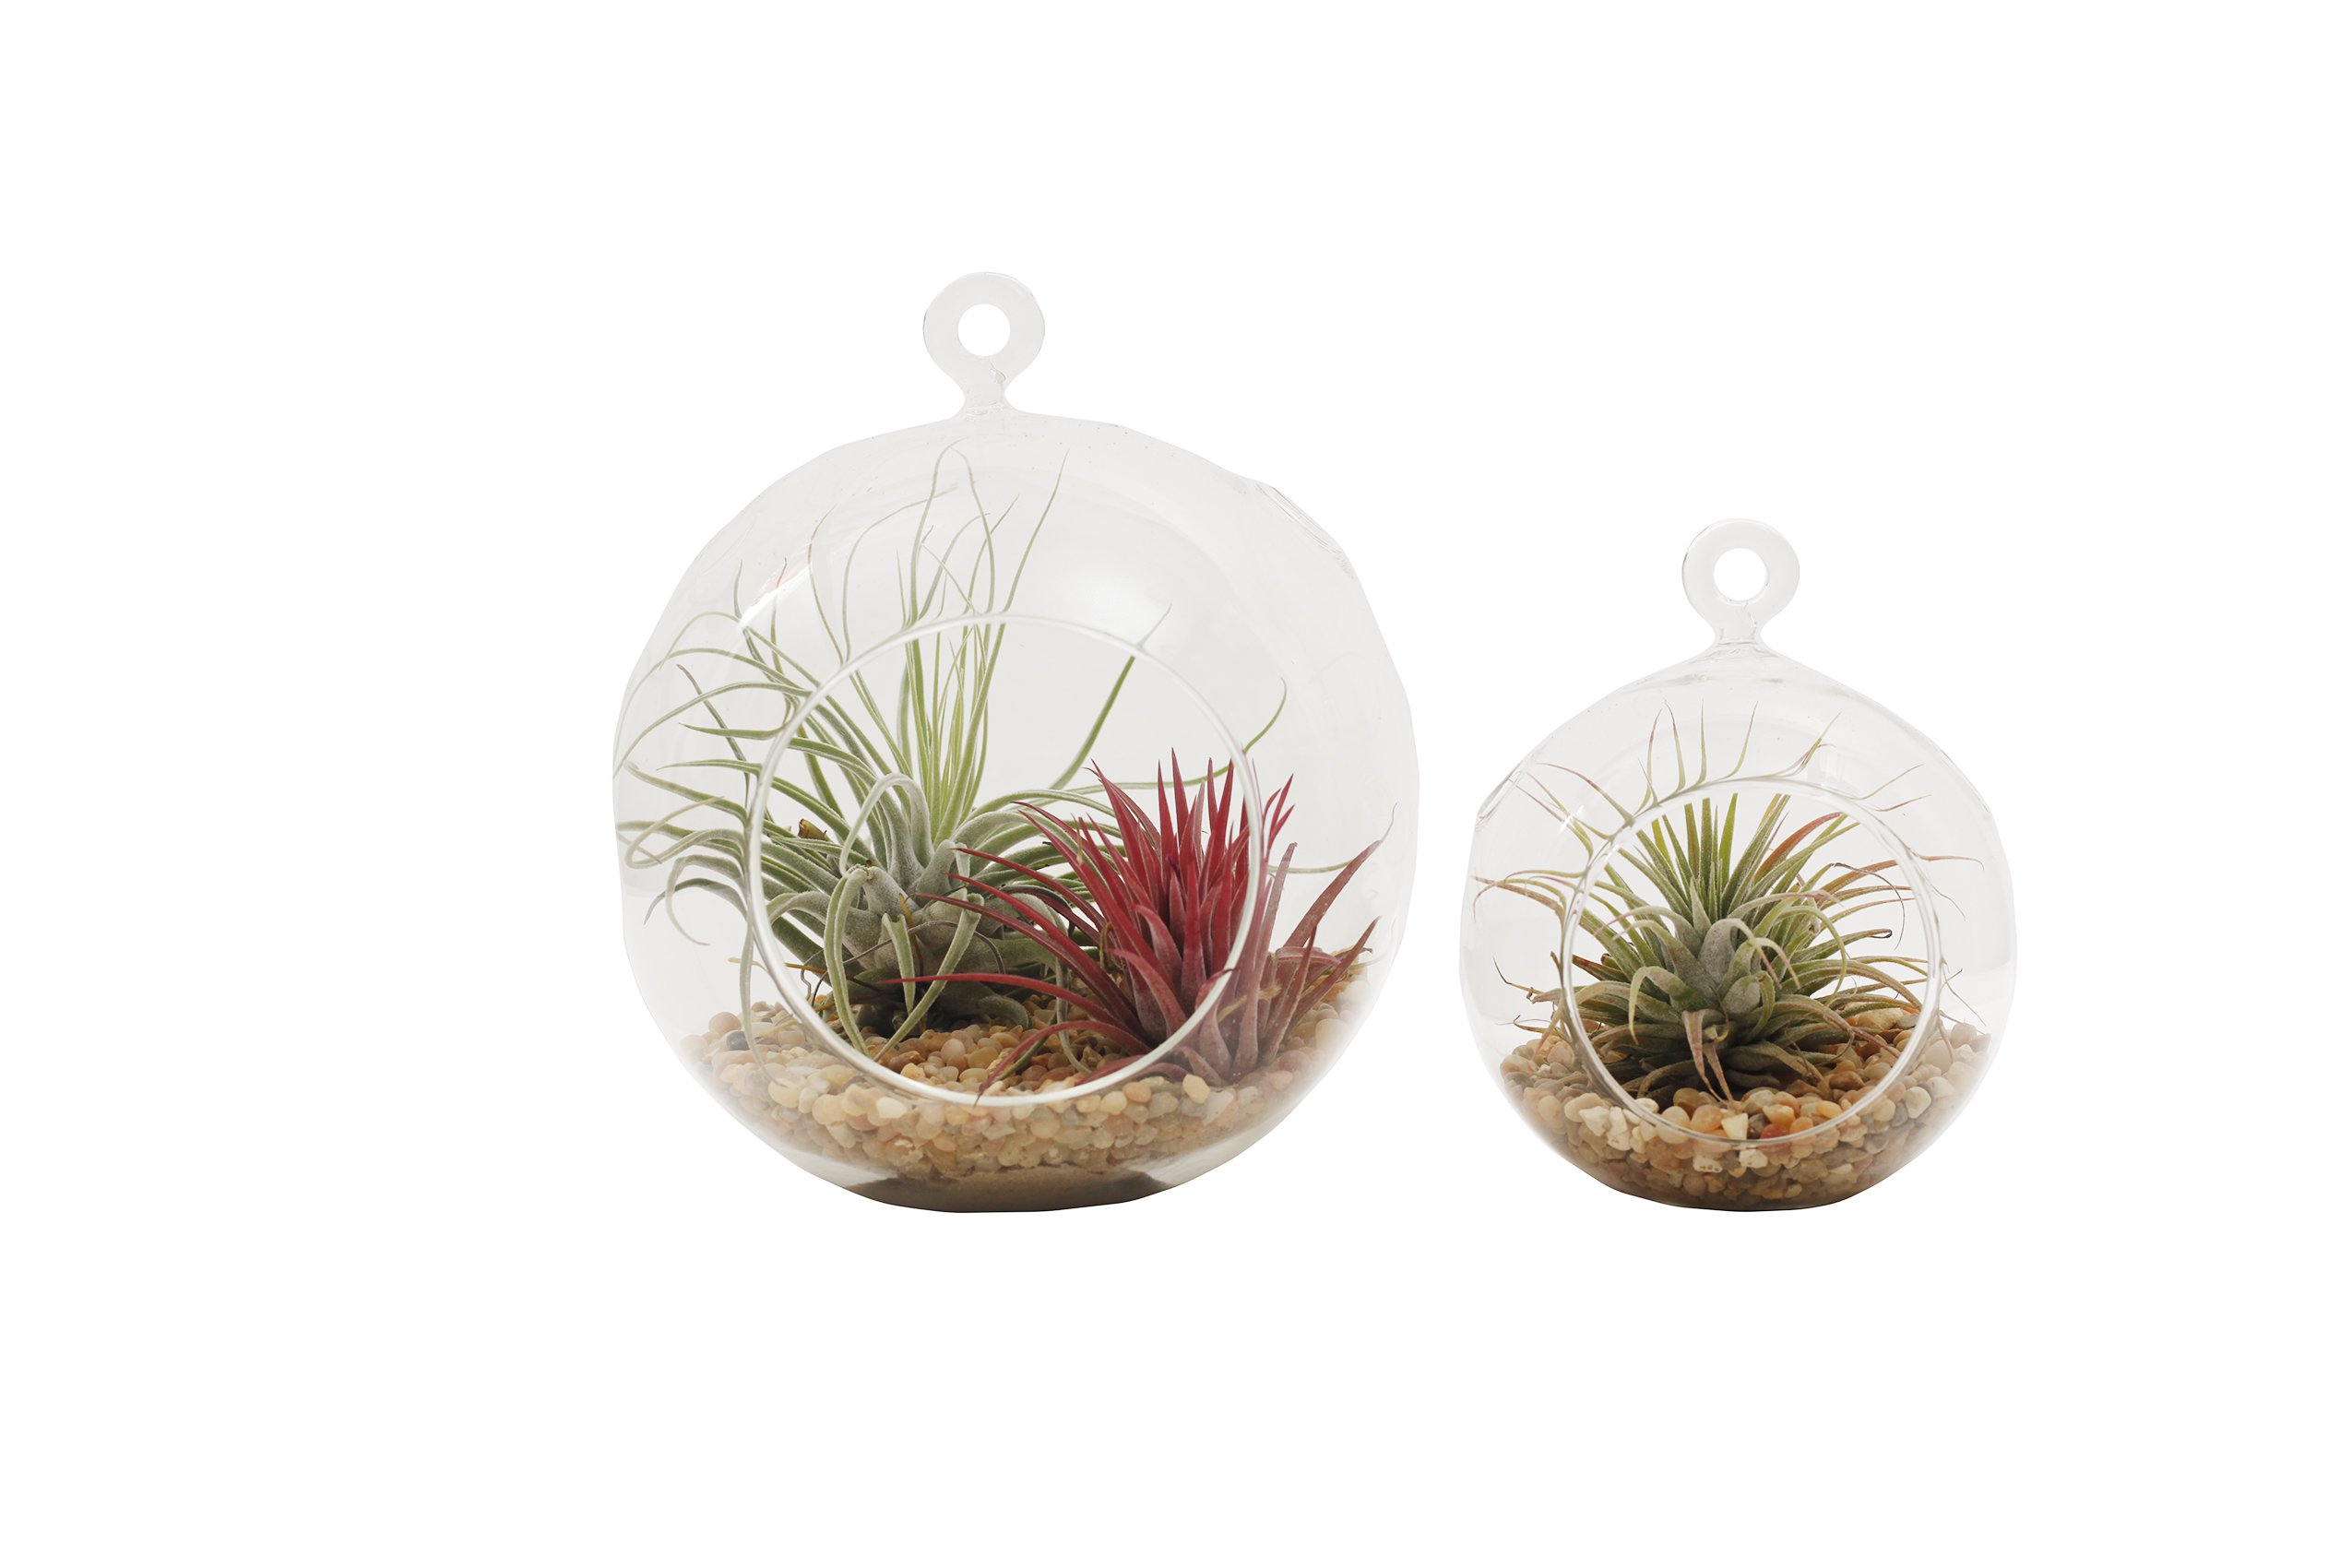 Shop Succulents | | Live Air Plants in Mini & Large Terrarium Duo, Hand Selected, Ideal for Home Décor or Wedding Events | Set of 2 by Shop Succulents